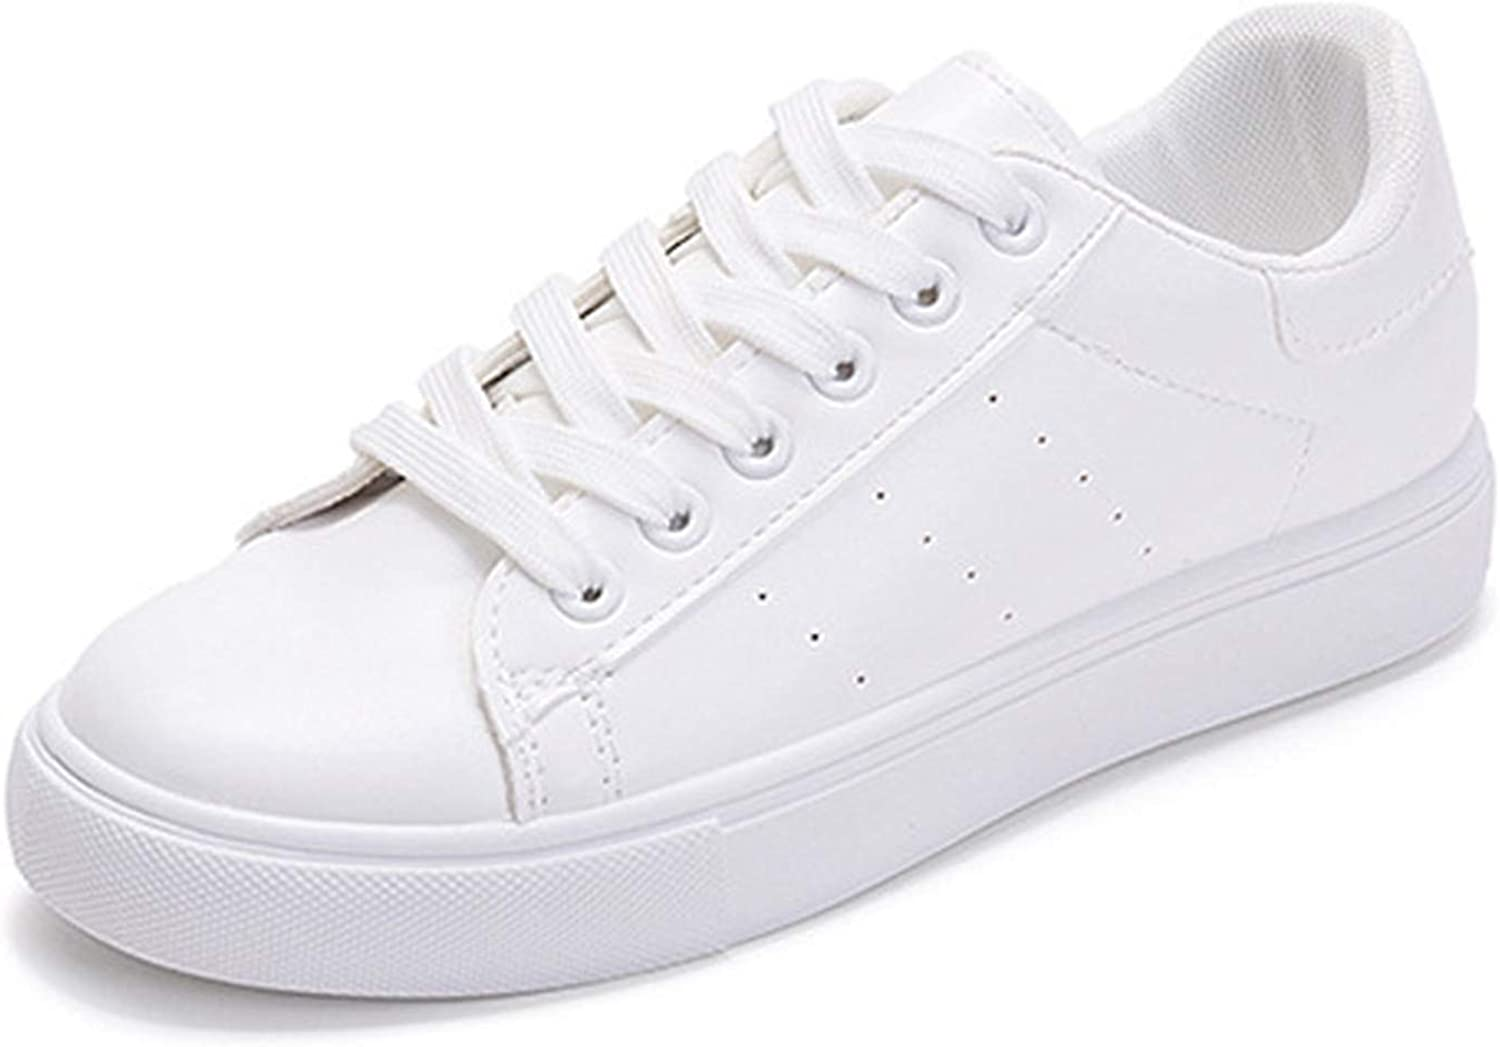 Women White shoes Flat Casual Vulcanized shoes Lace-Up Autumn Sneakers Platform